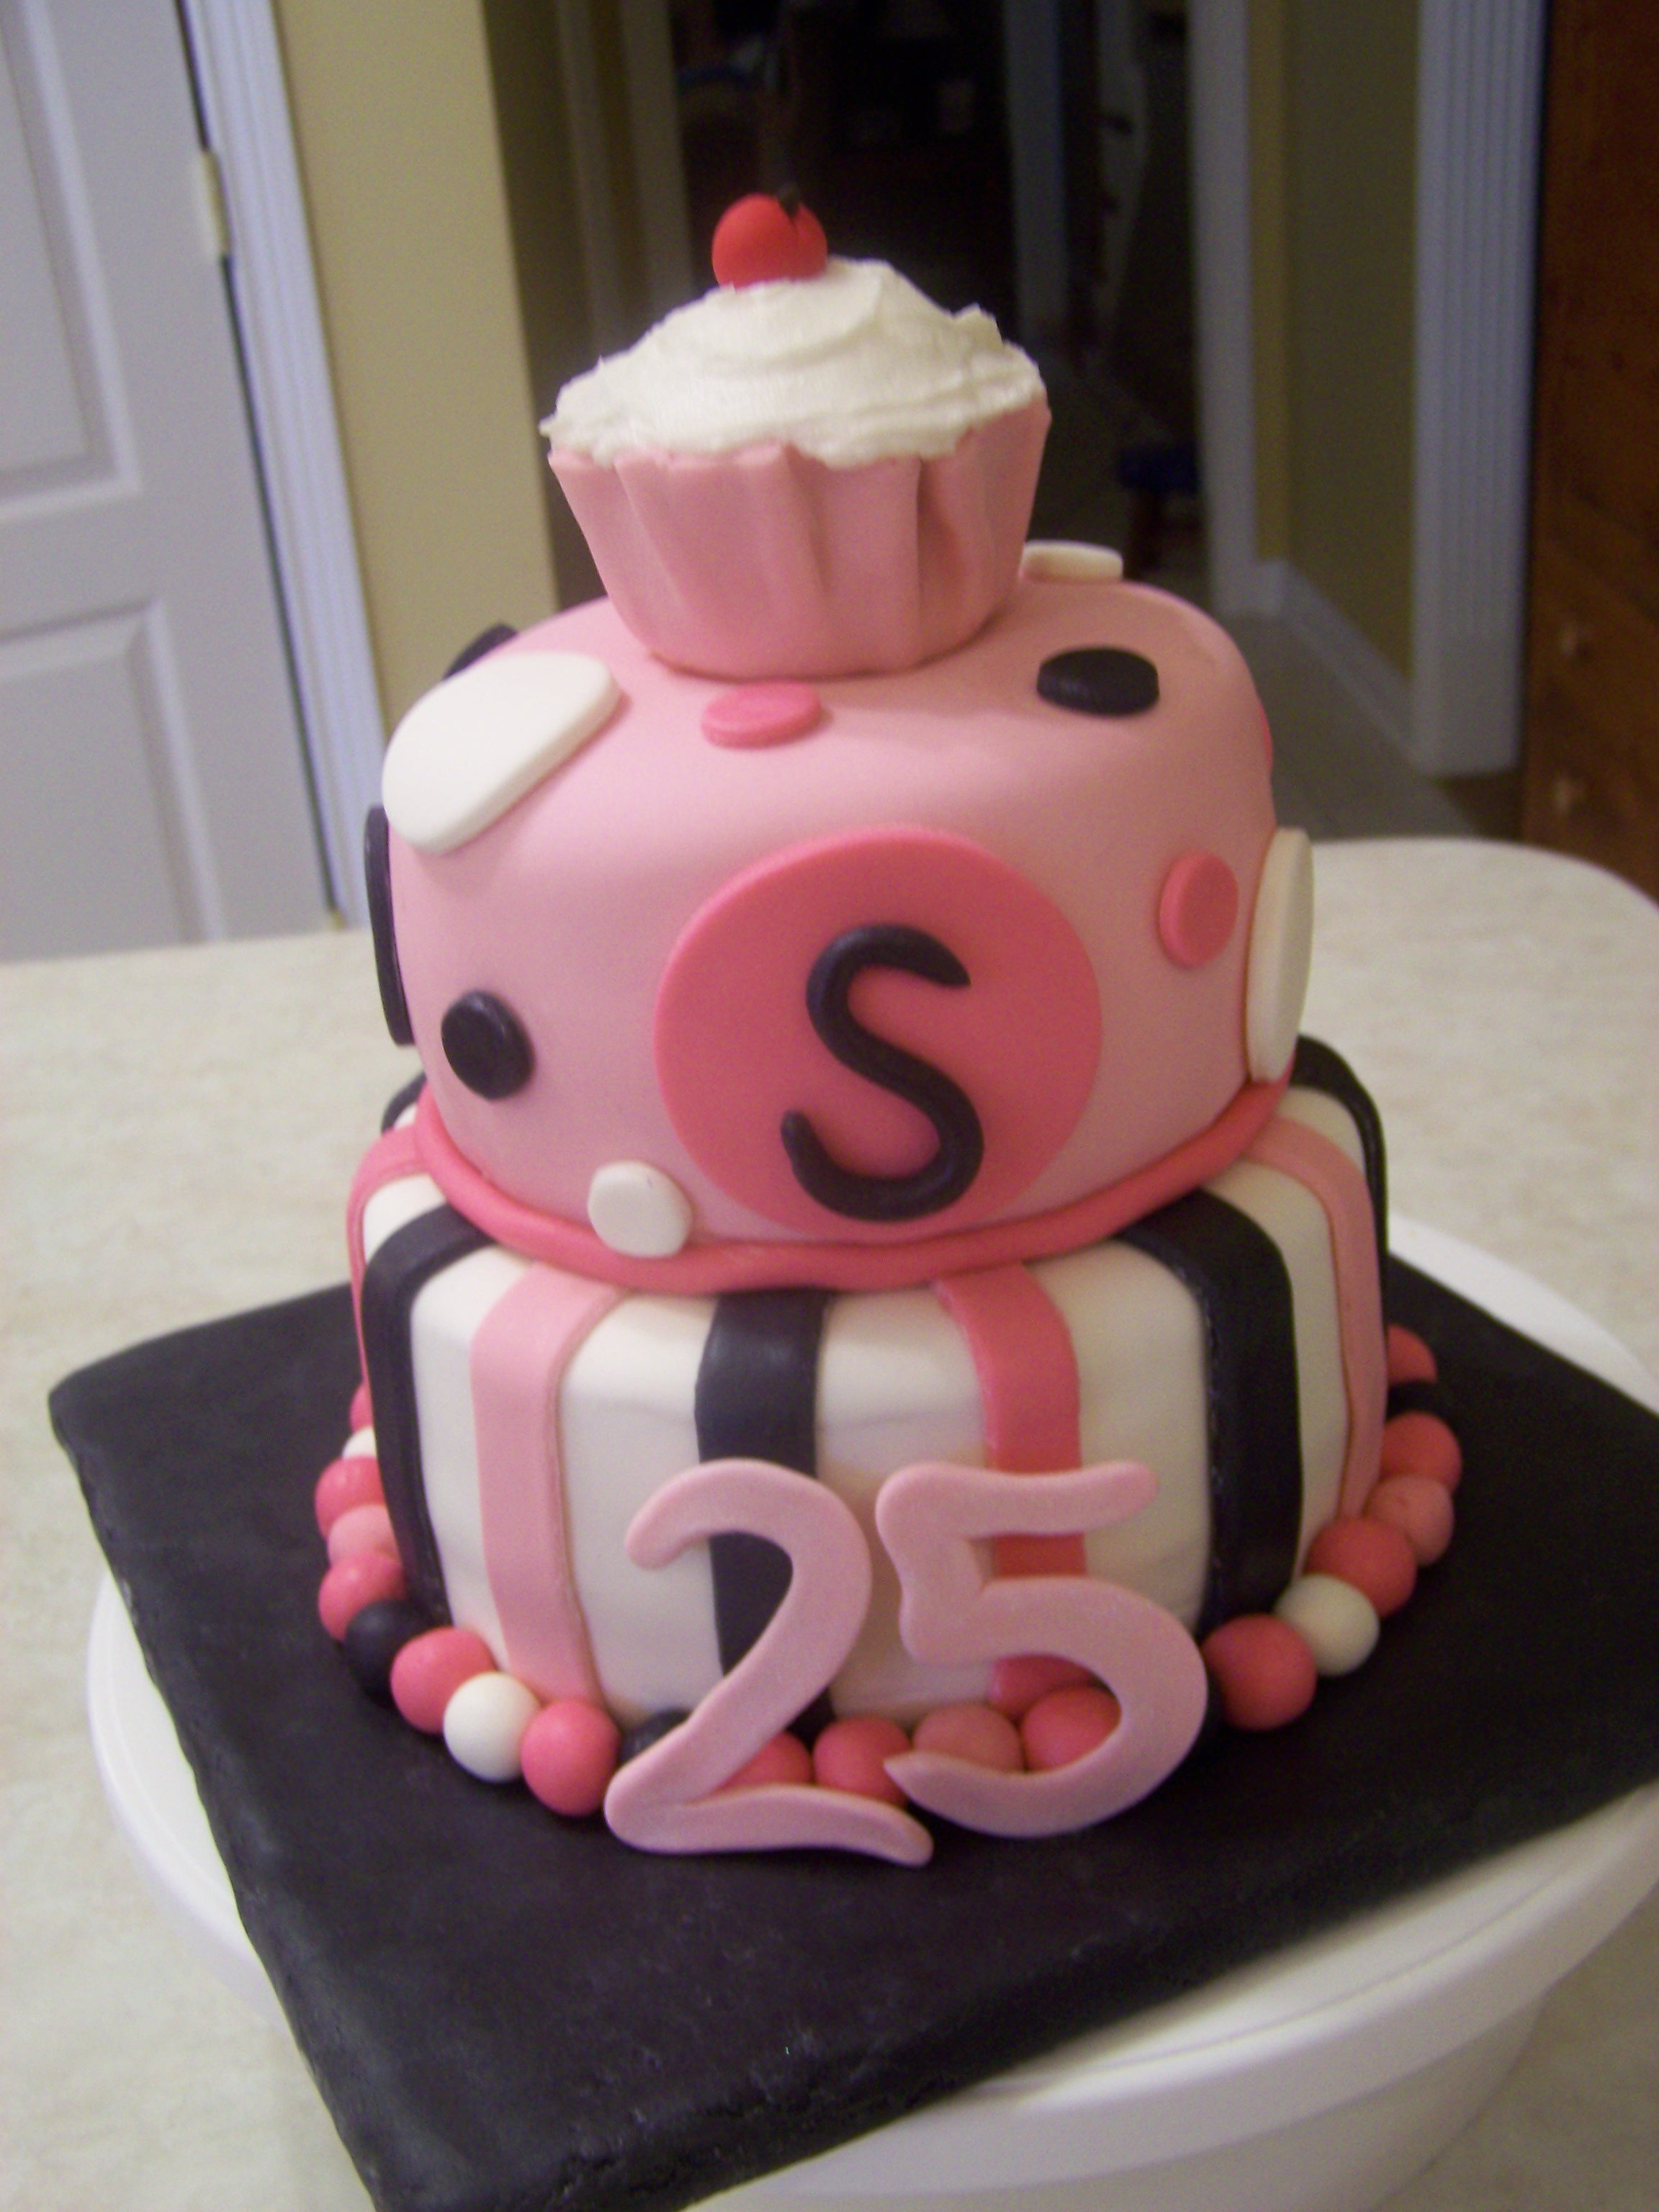 Best ideas about 25 Birthday Cake . Save or Pin Pink Black 25th Birthday Cake Now.